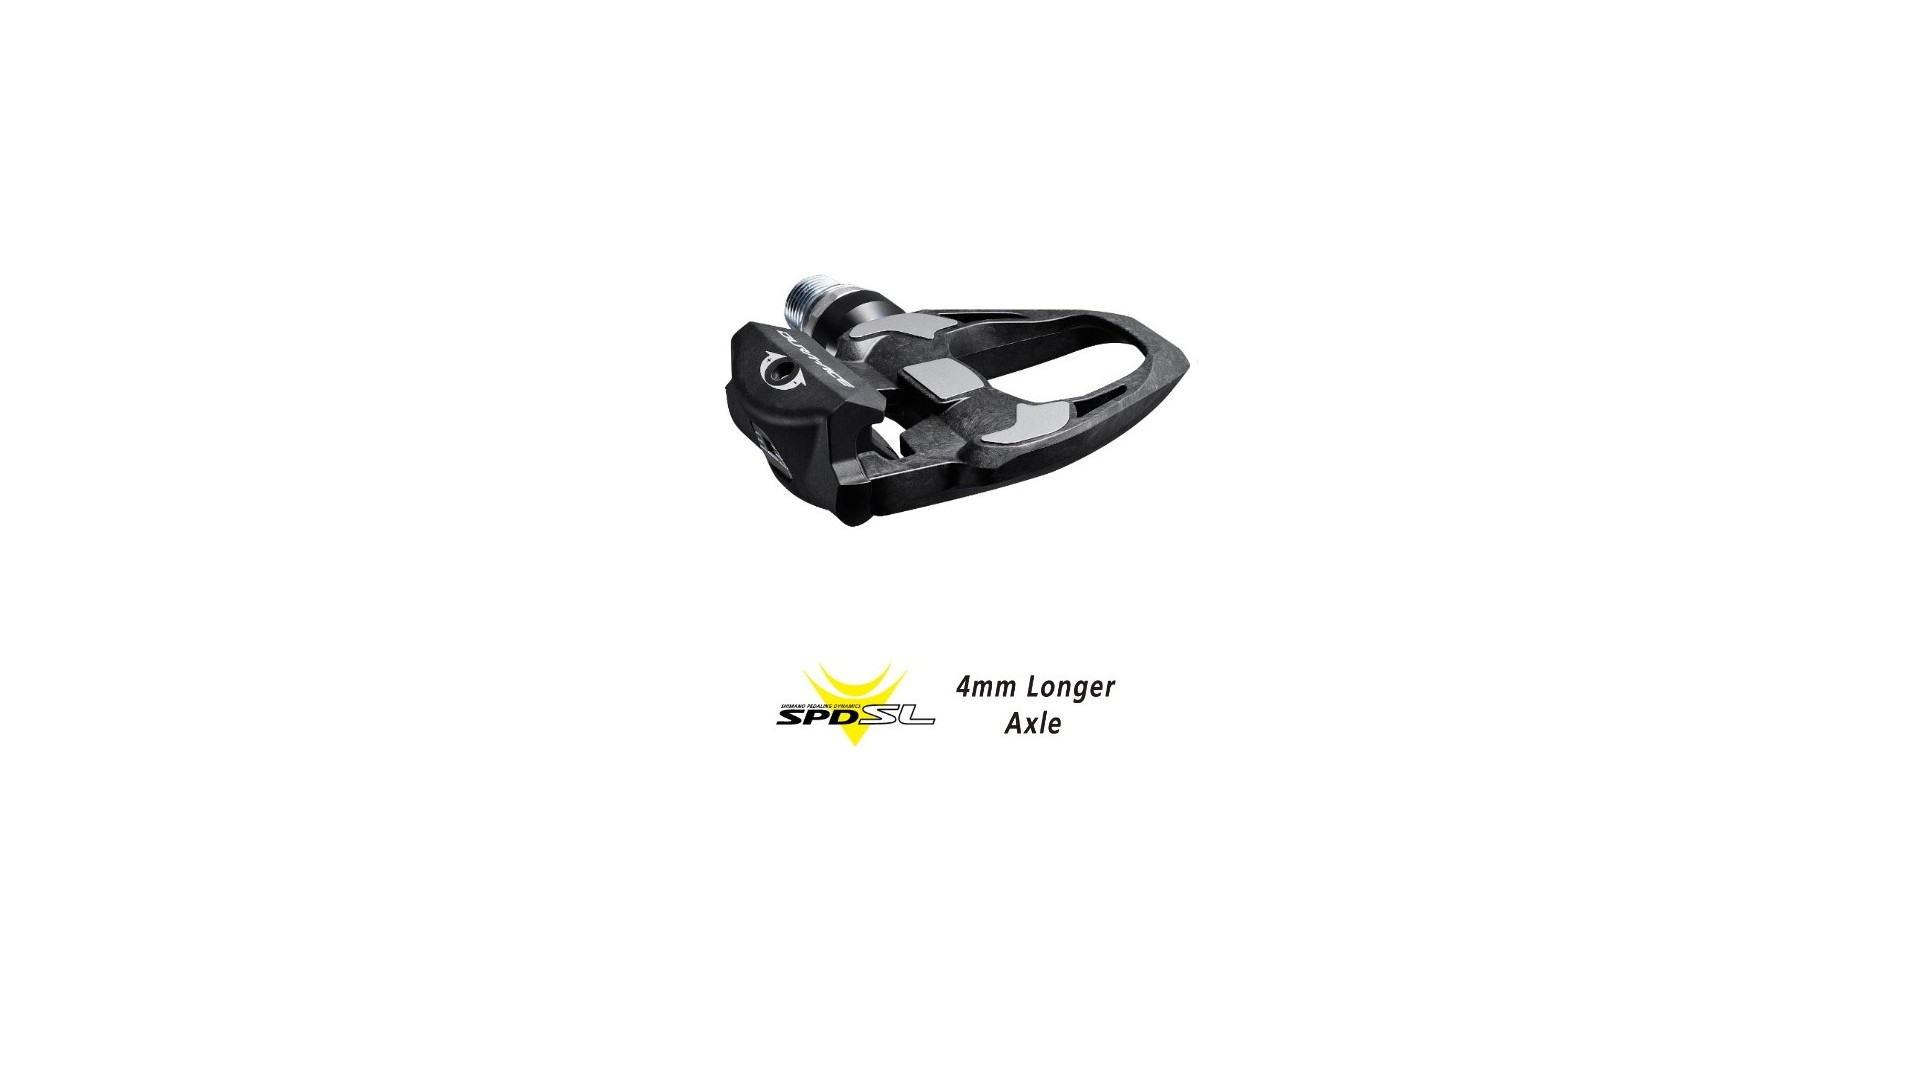 Shimano Pedals Dura Dace R9100 Carbon SPD-SL Axis 4mm